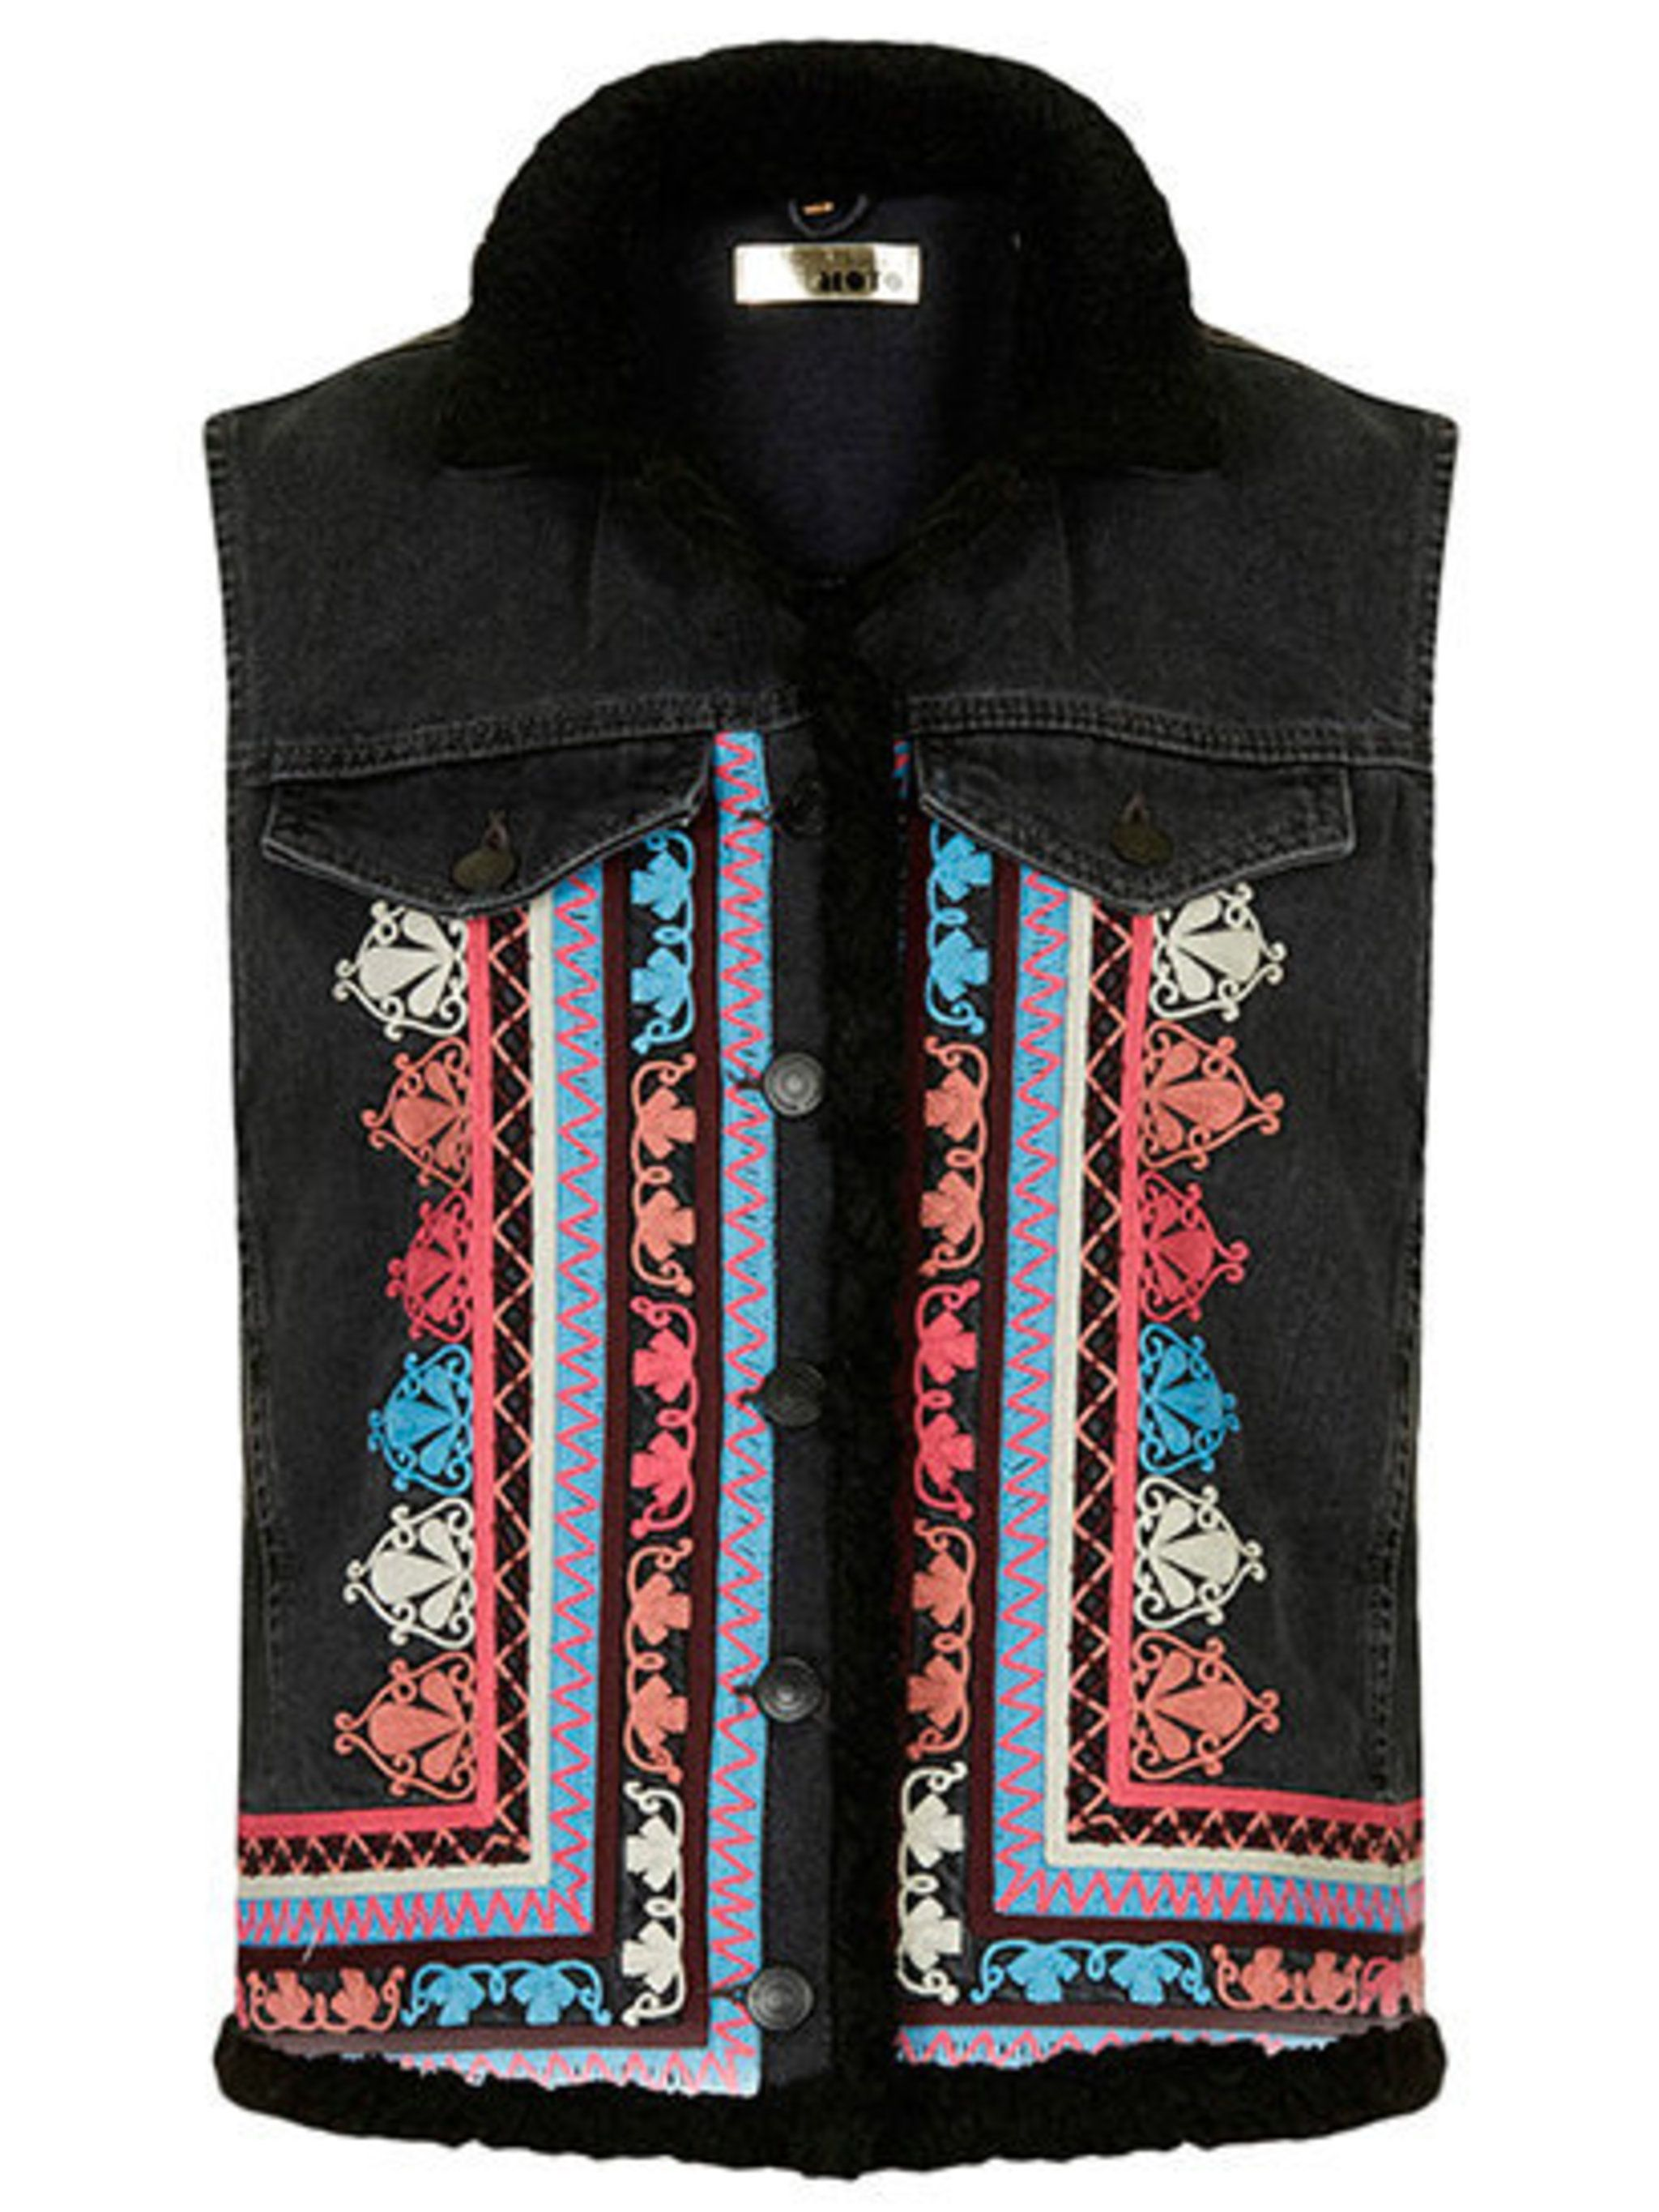 "<p>Embroidered borg gilet, £60 at <a href=""http://www.topshop.com/en/tsuk/product/clothing-427/festival-1905528/moto-embroidered-borg-gilet-2963260?bi=1&ps=200"">Topshop</a>.</p>"